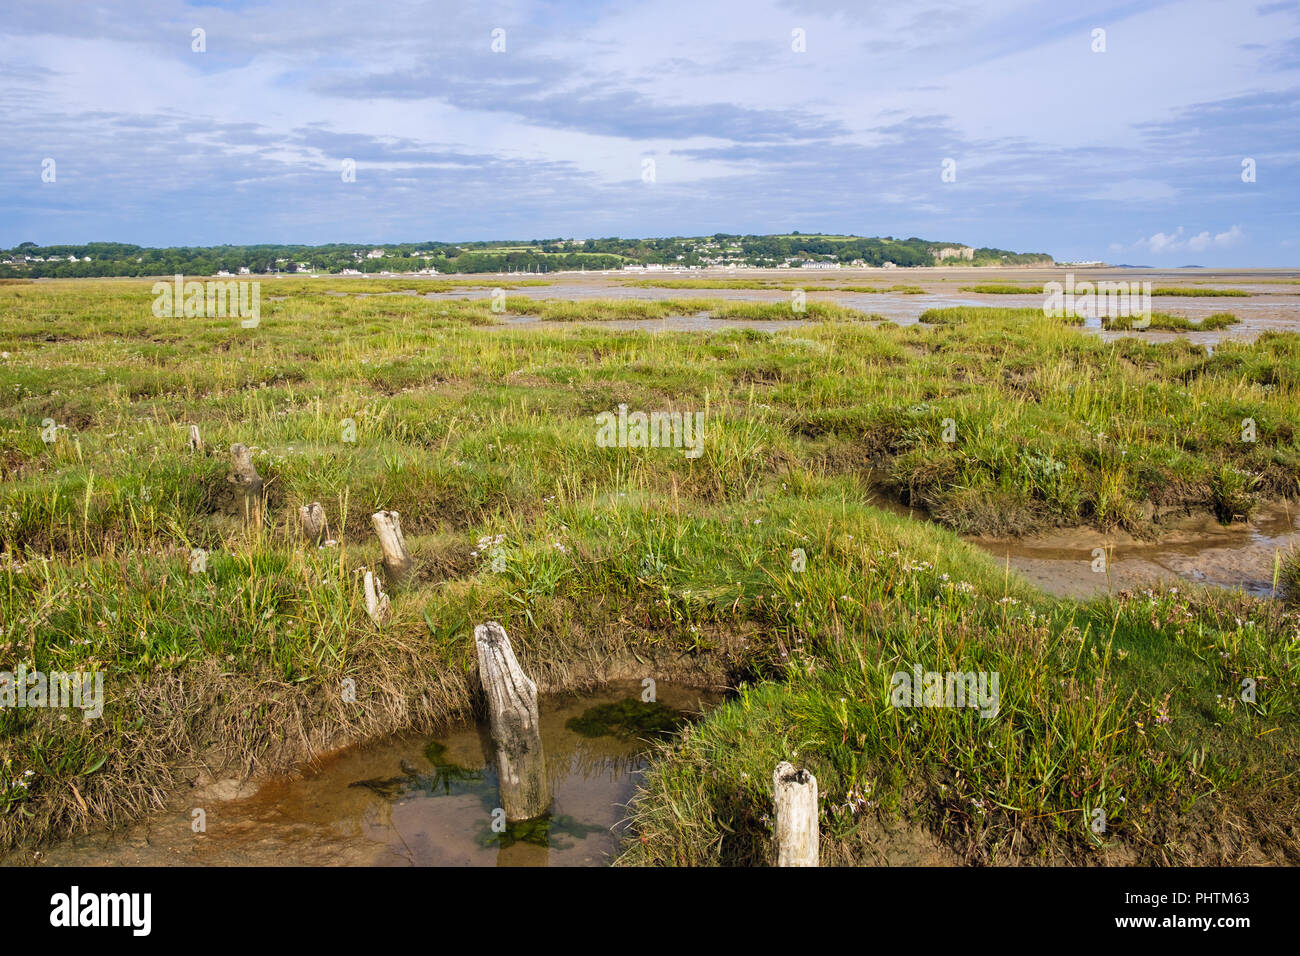 Coastal wetland saltmarsh bog at low tide in Red Wharf Bay (Traeth Coch) AONB from Pentraeth, Isle of Anglesey (Ynys Mon), Wales, UK, Britain Stock Photo